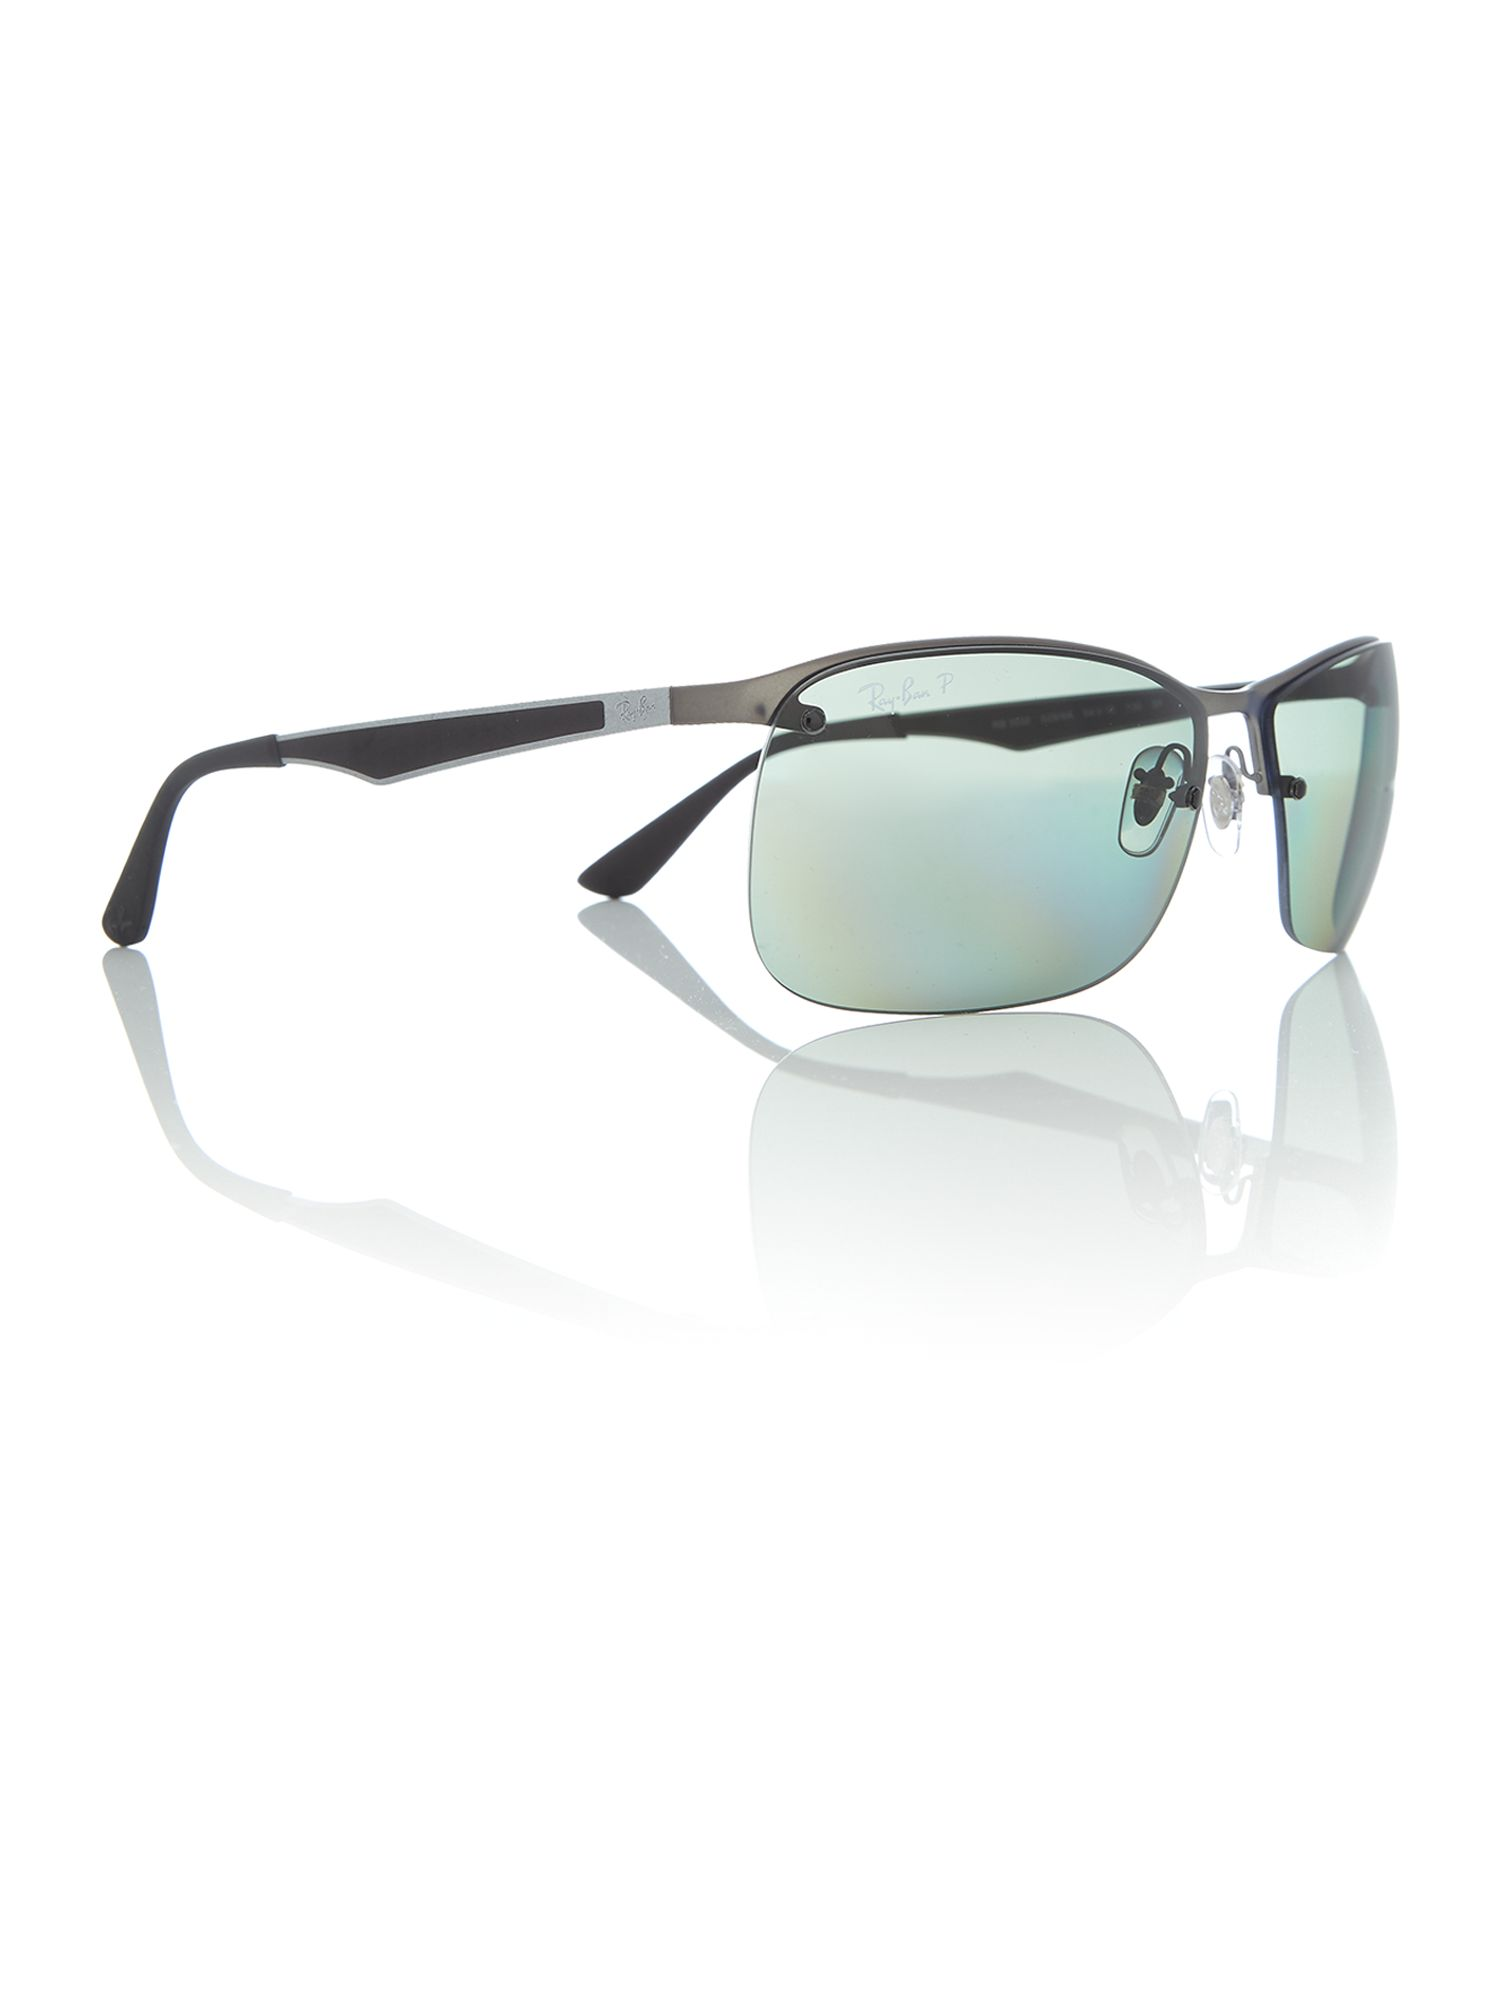 fe0706a47 Ray-Ban Gunmetal square RB3550 sunglasses, Silver | Octer | £163.00